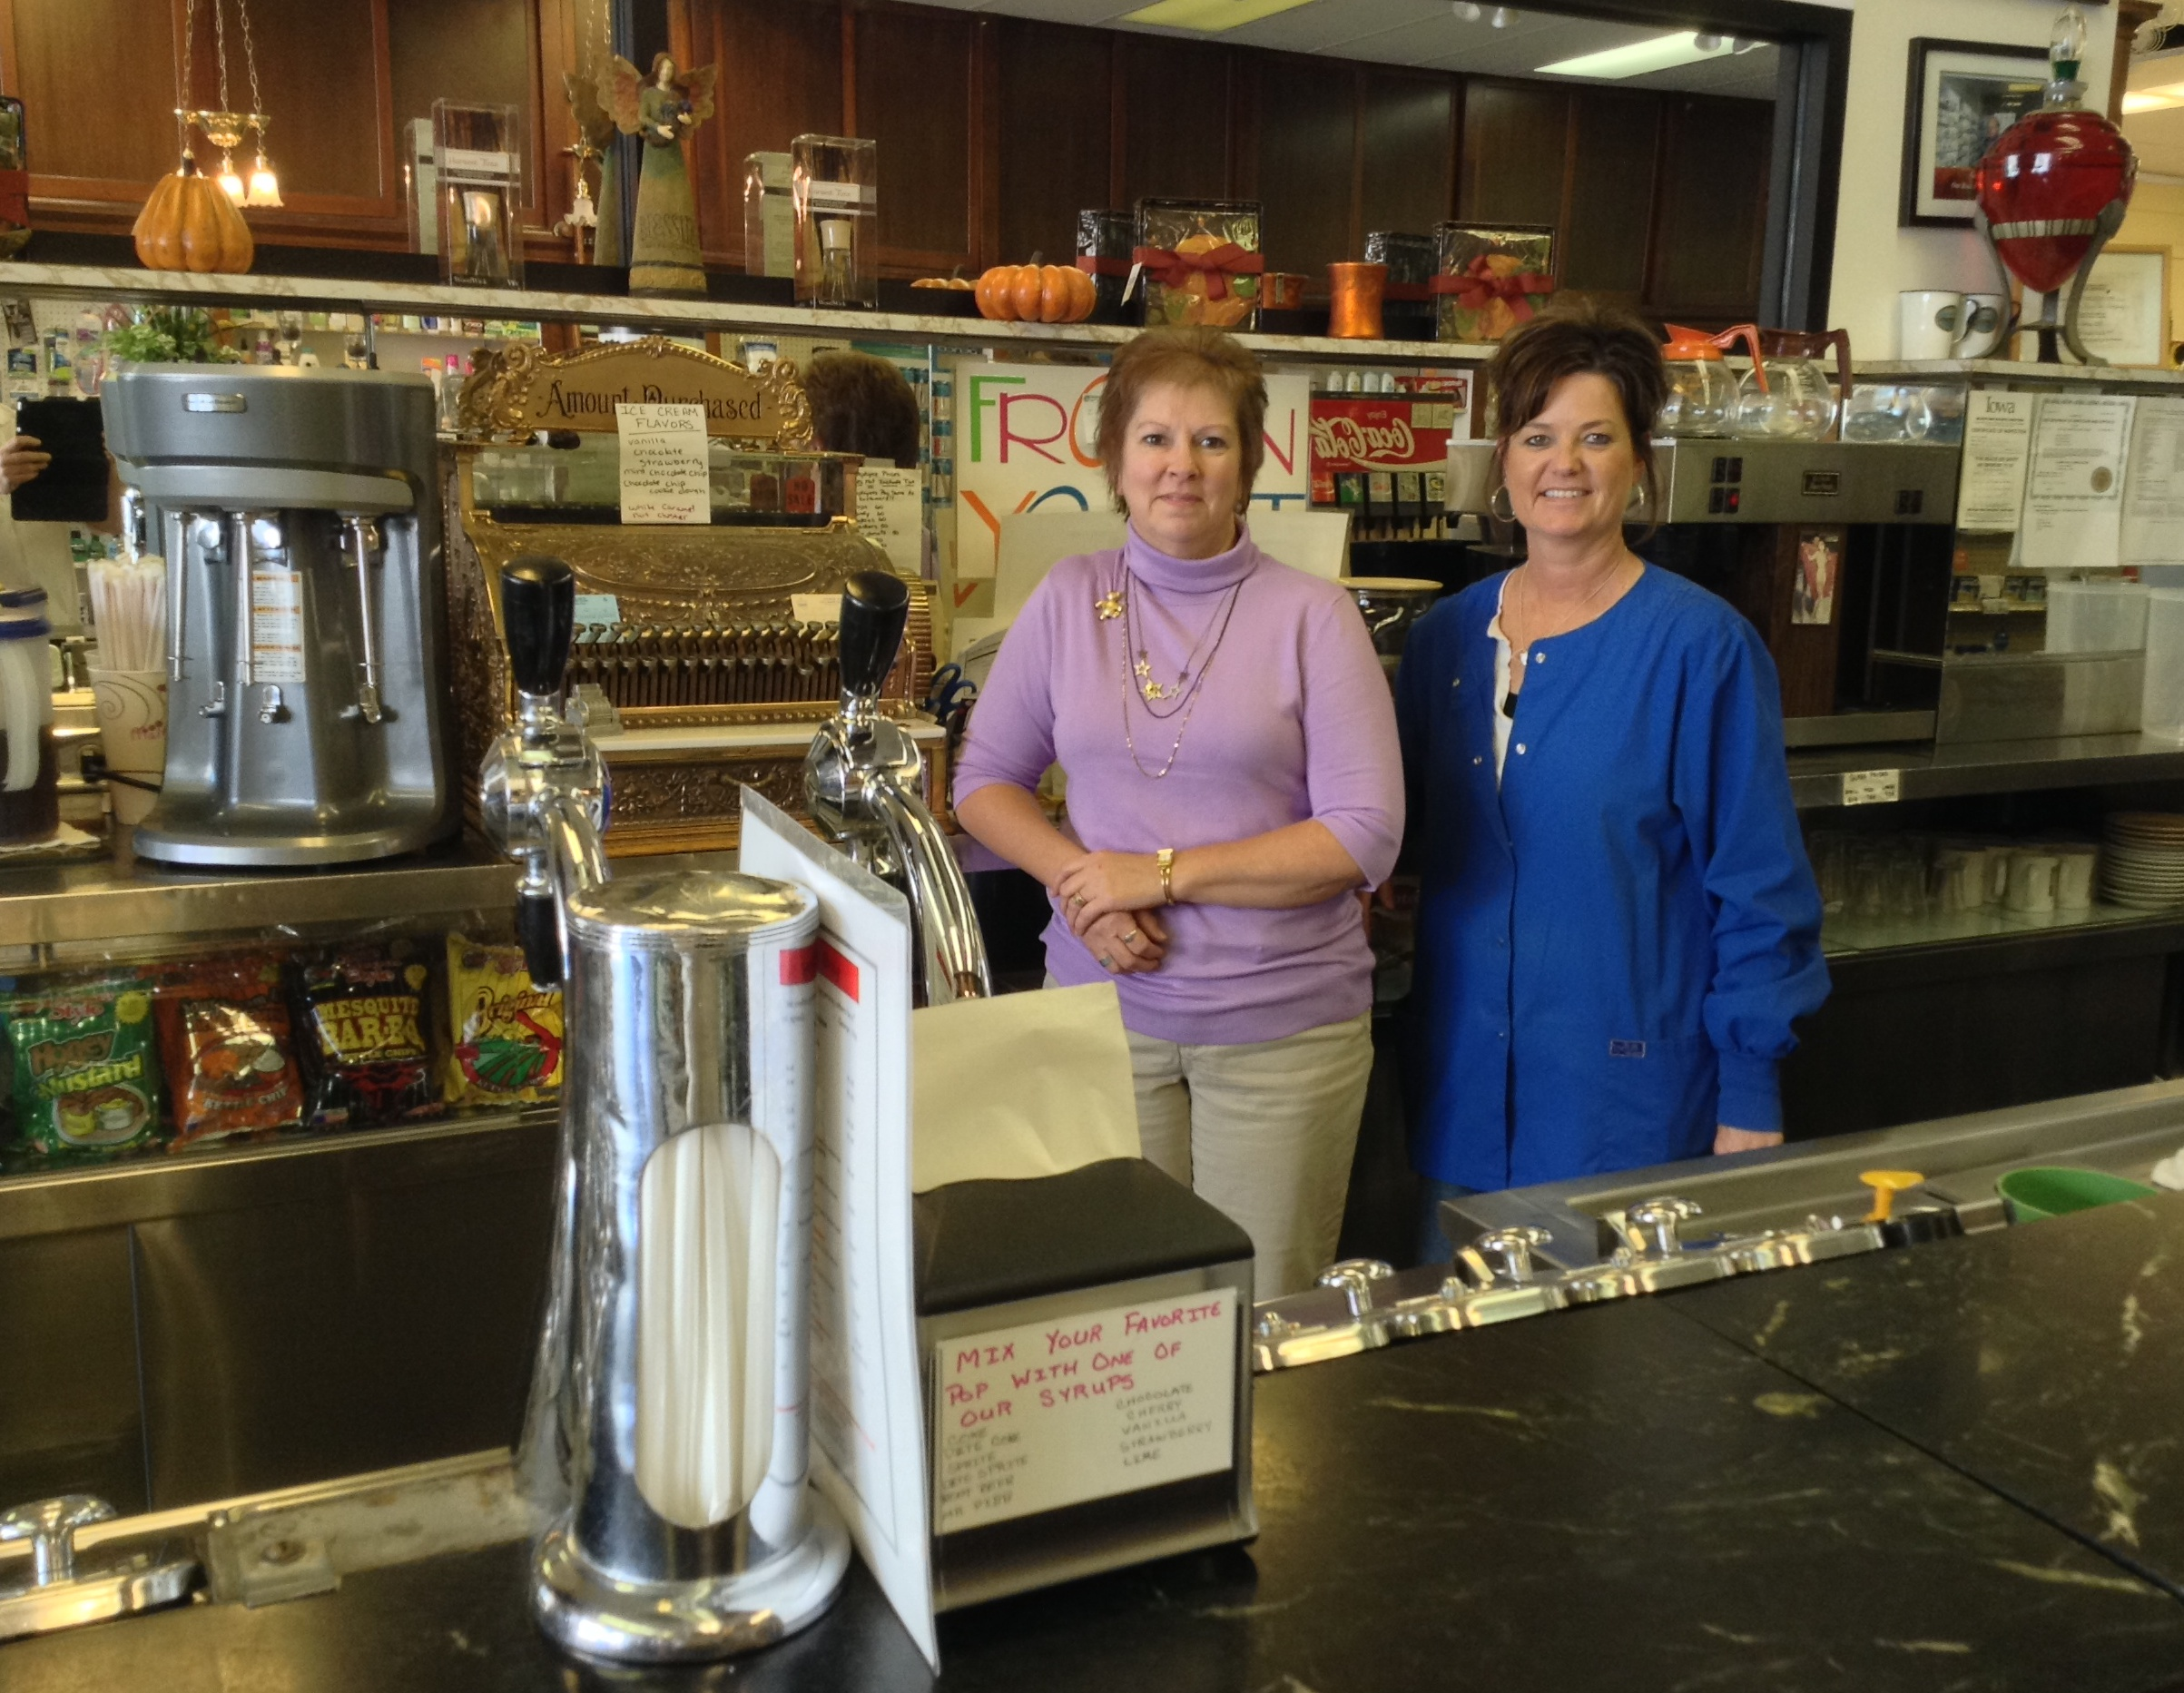 Donna Robison & Annie Van Houten at soda fountain 2.JPG